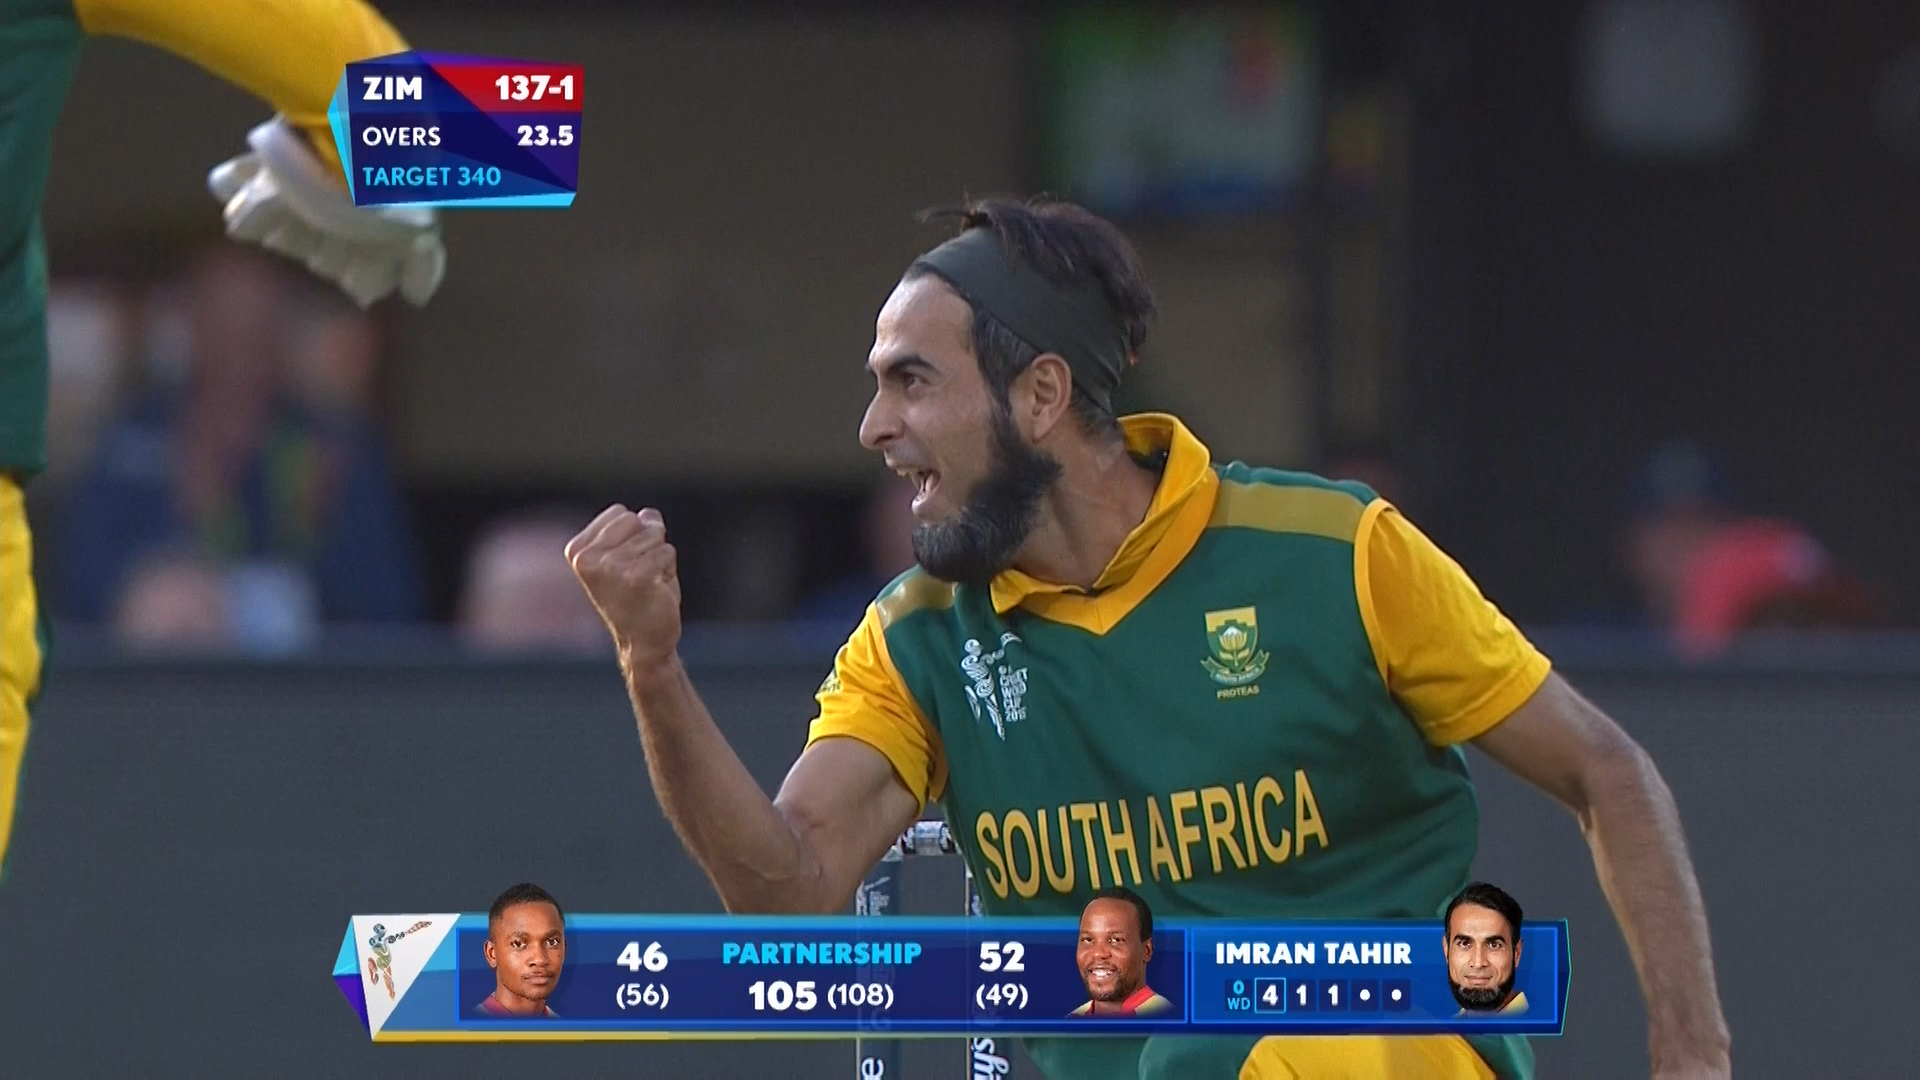 Match Hero – Imran Tahir – SA vs ZIM